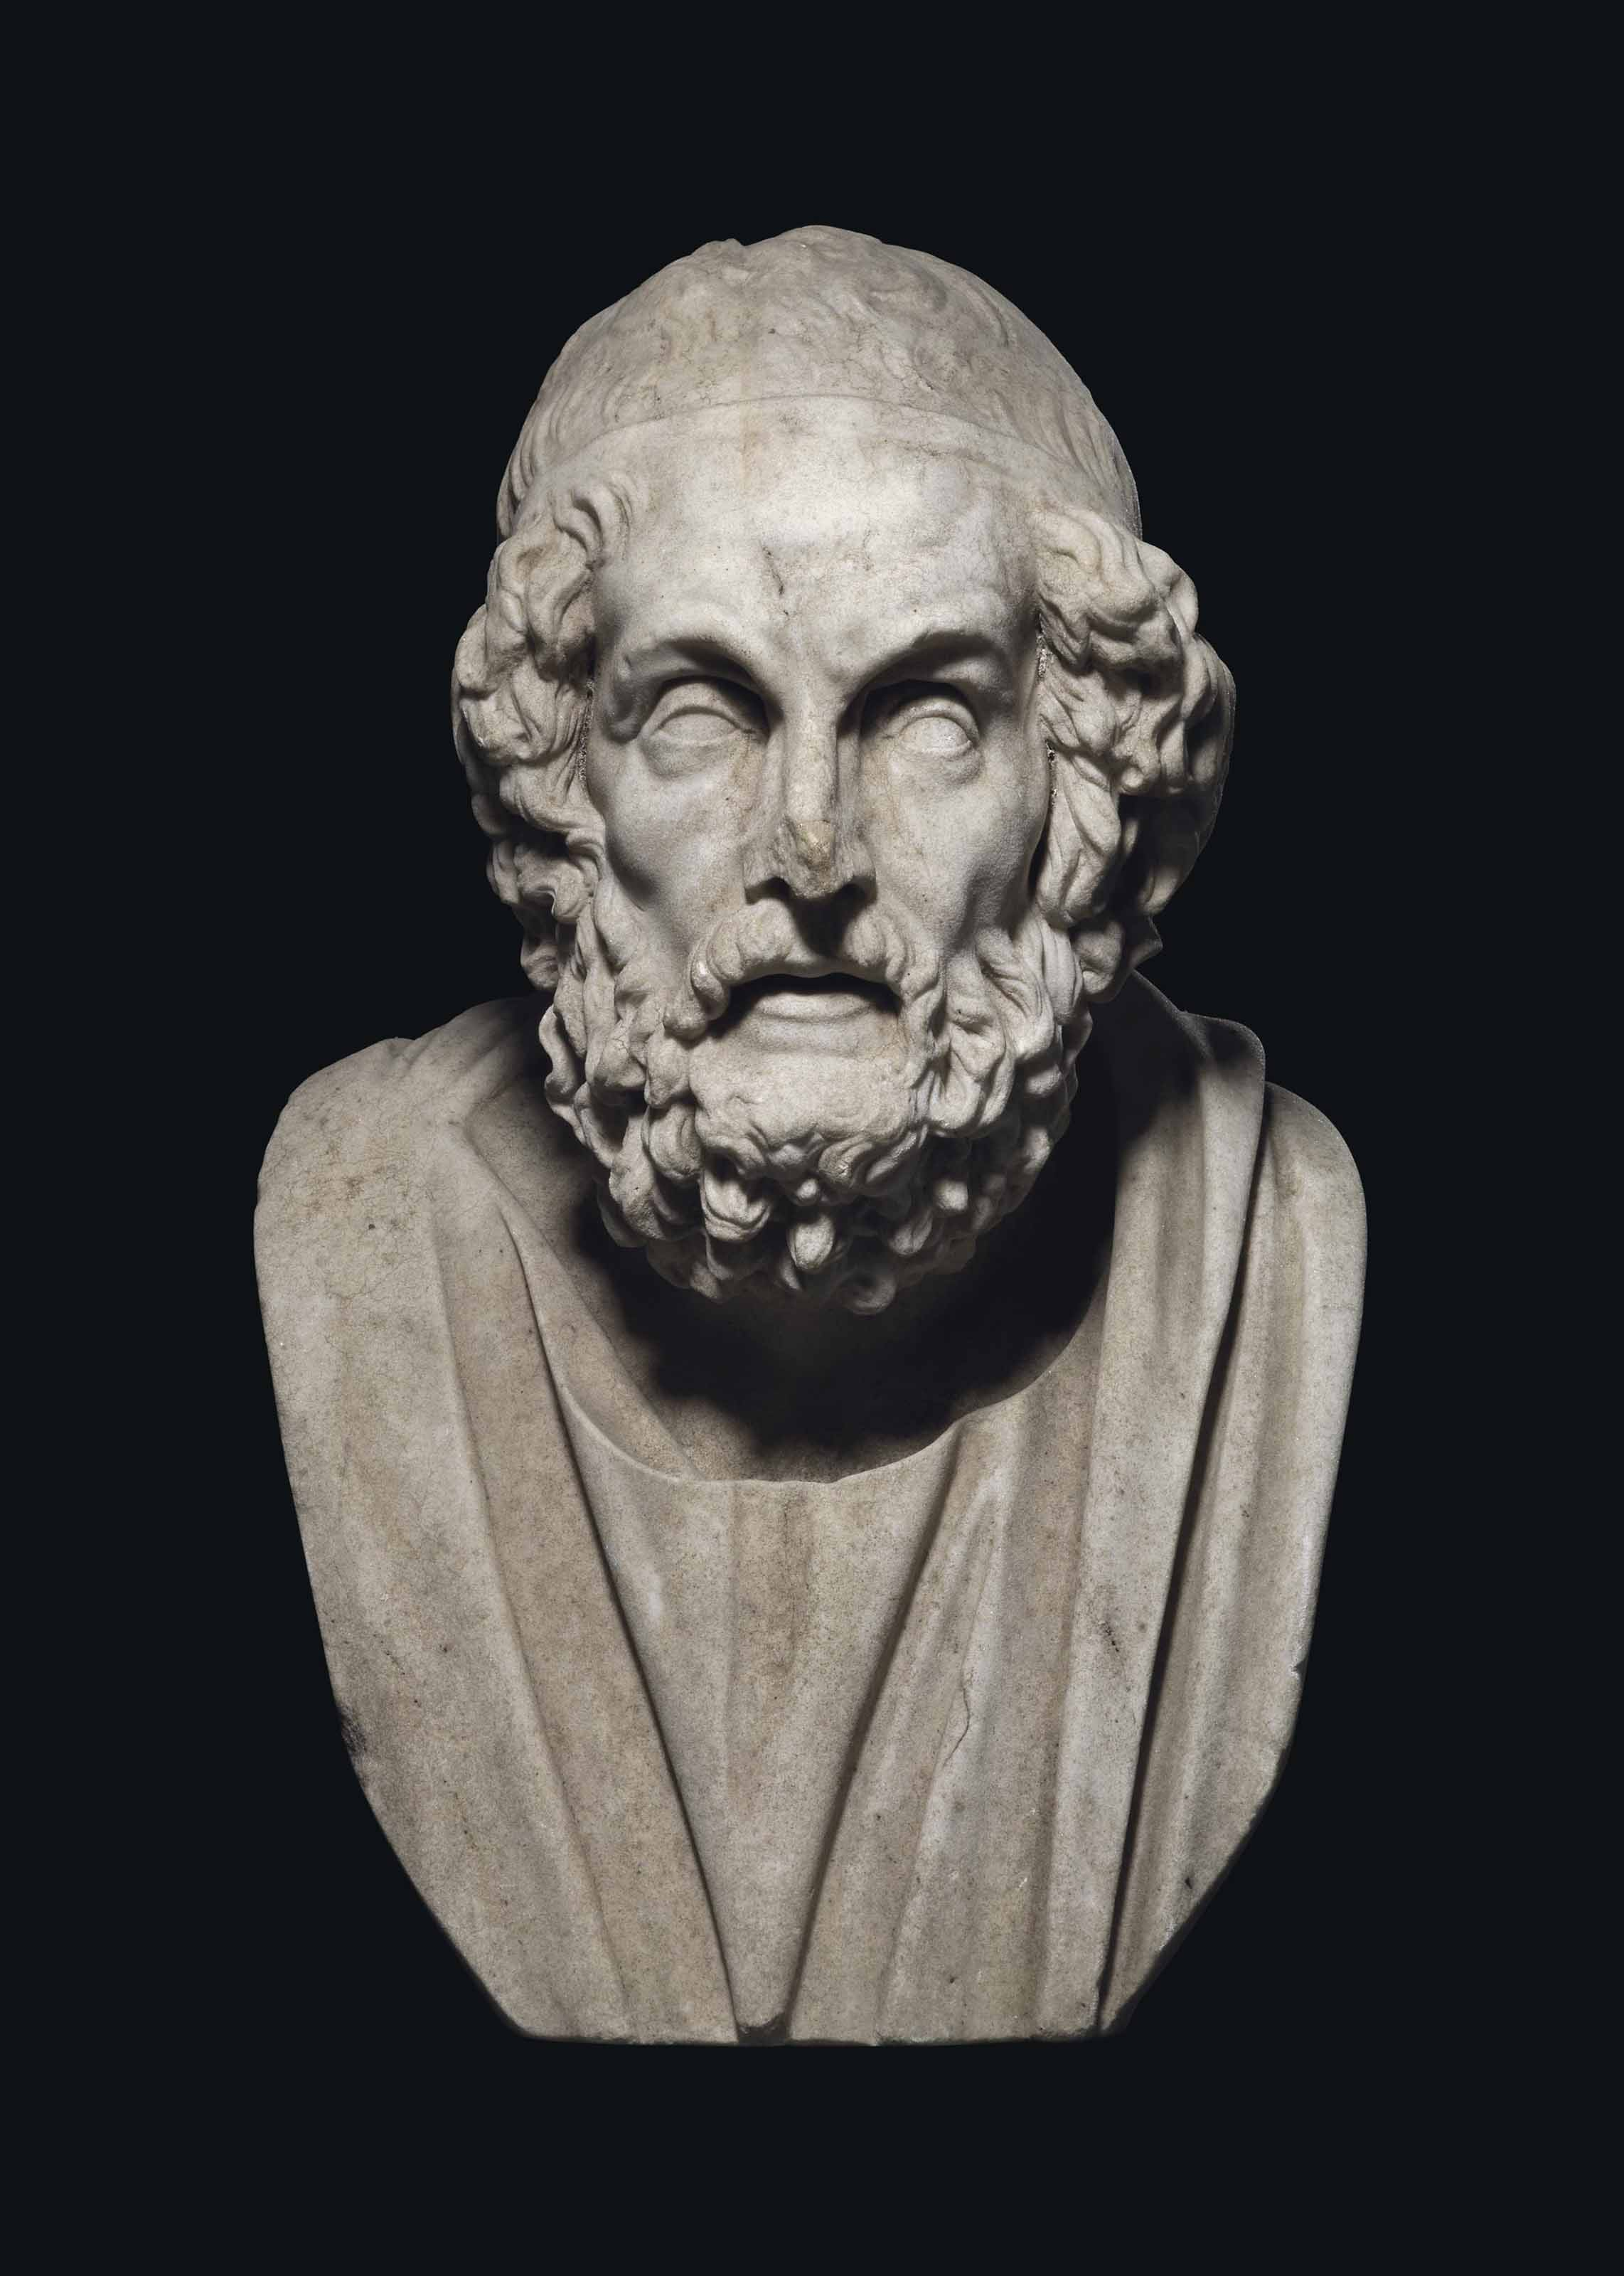 A MARBLE BUST OF HOMER